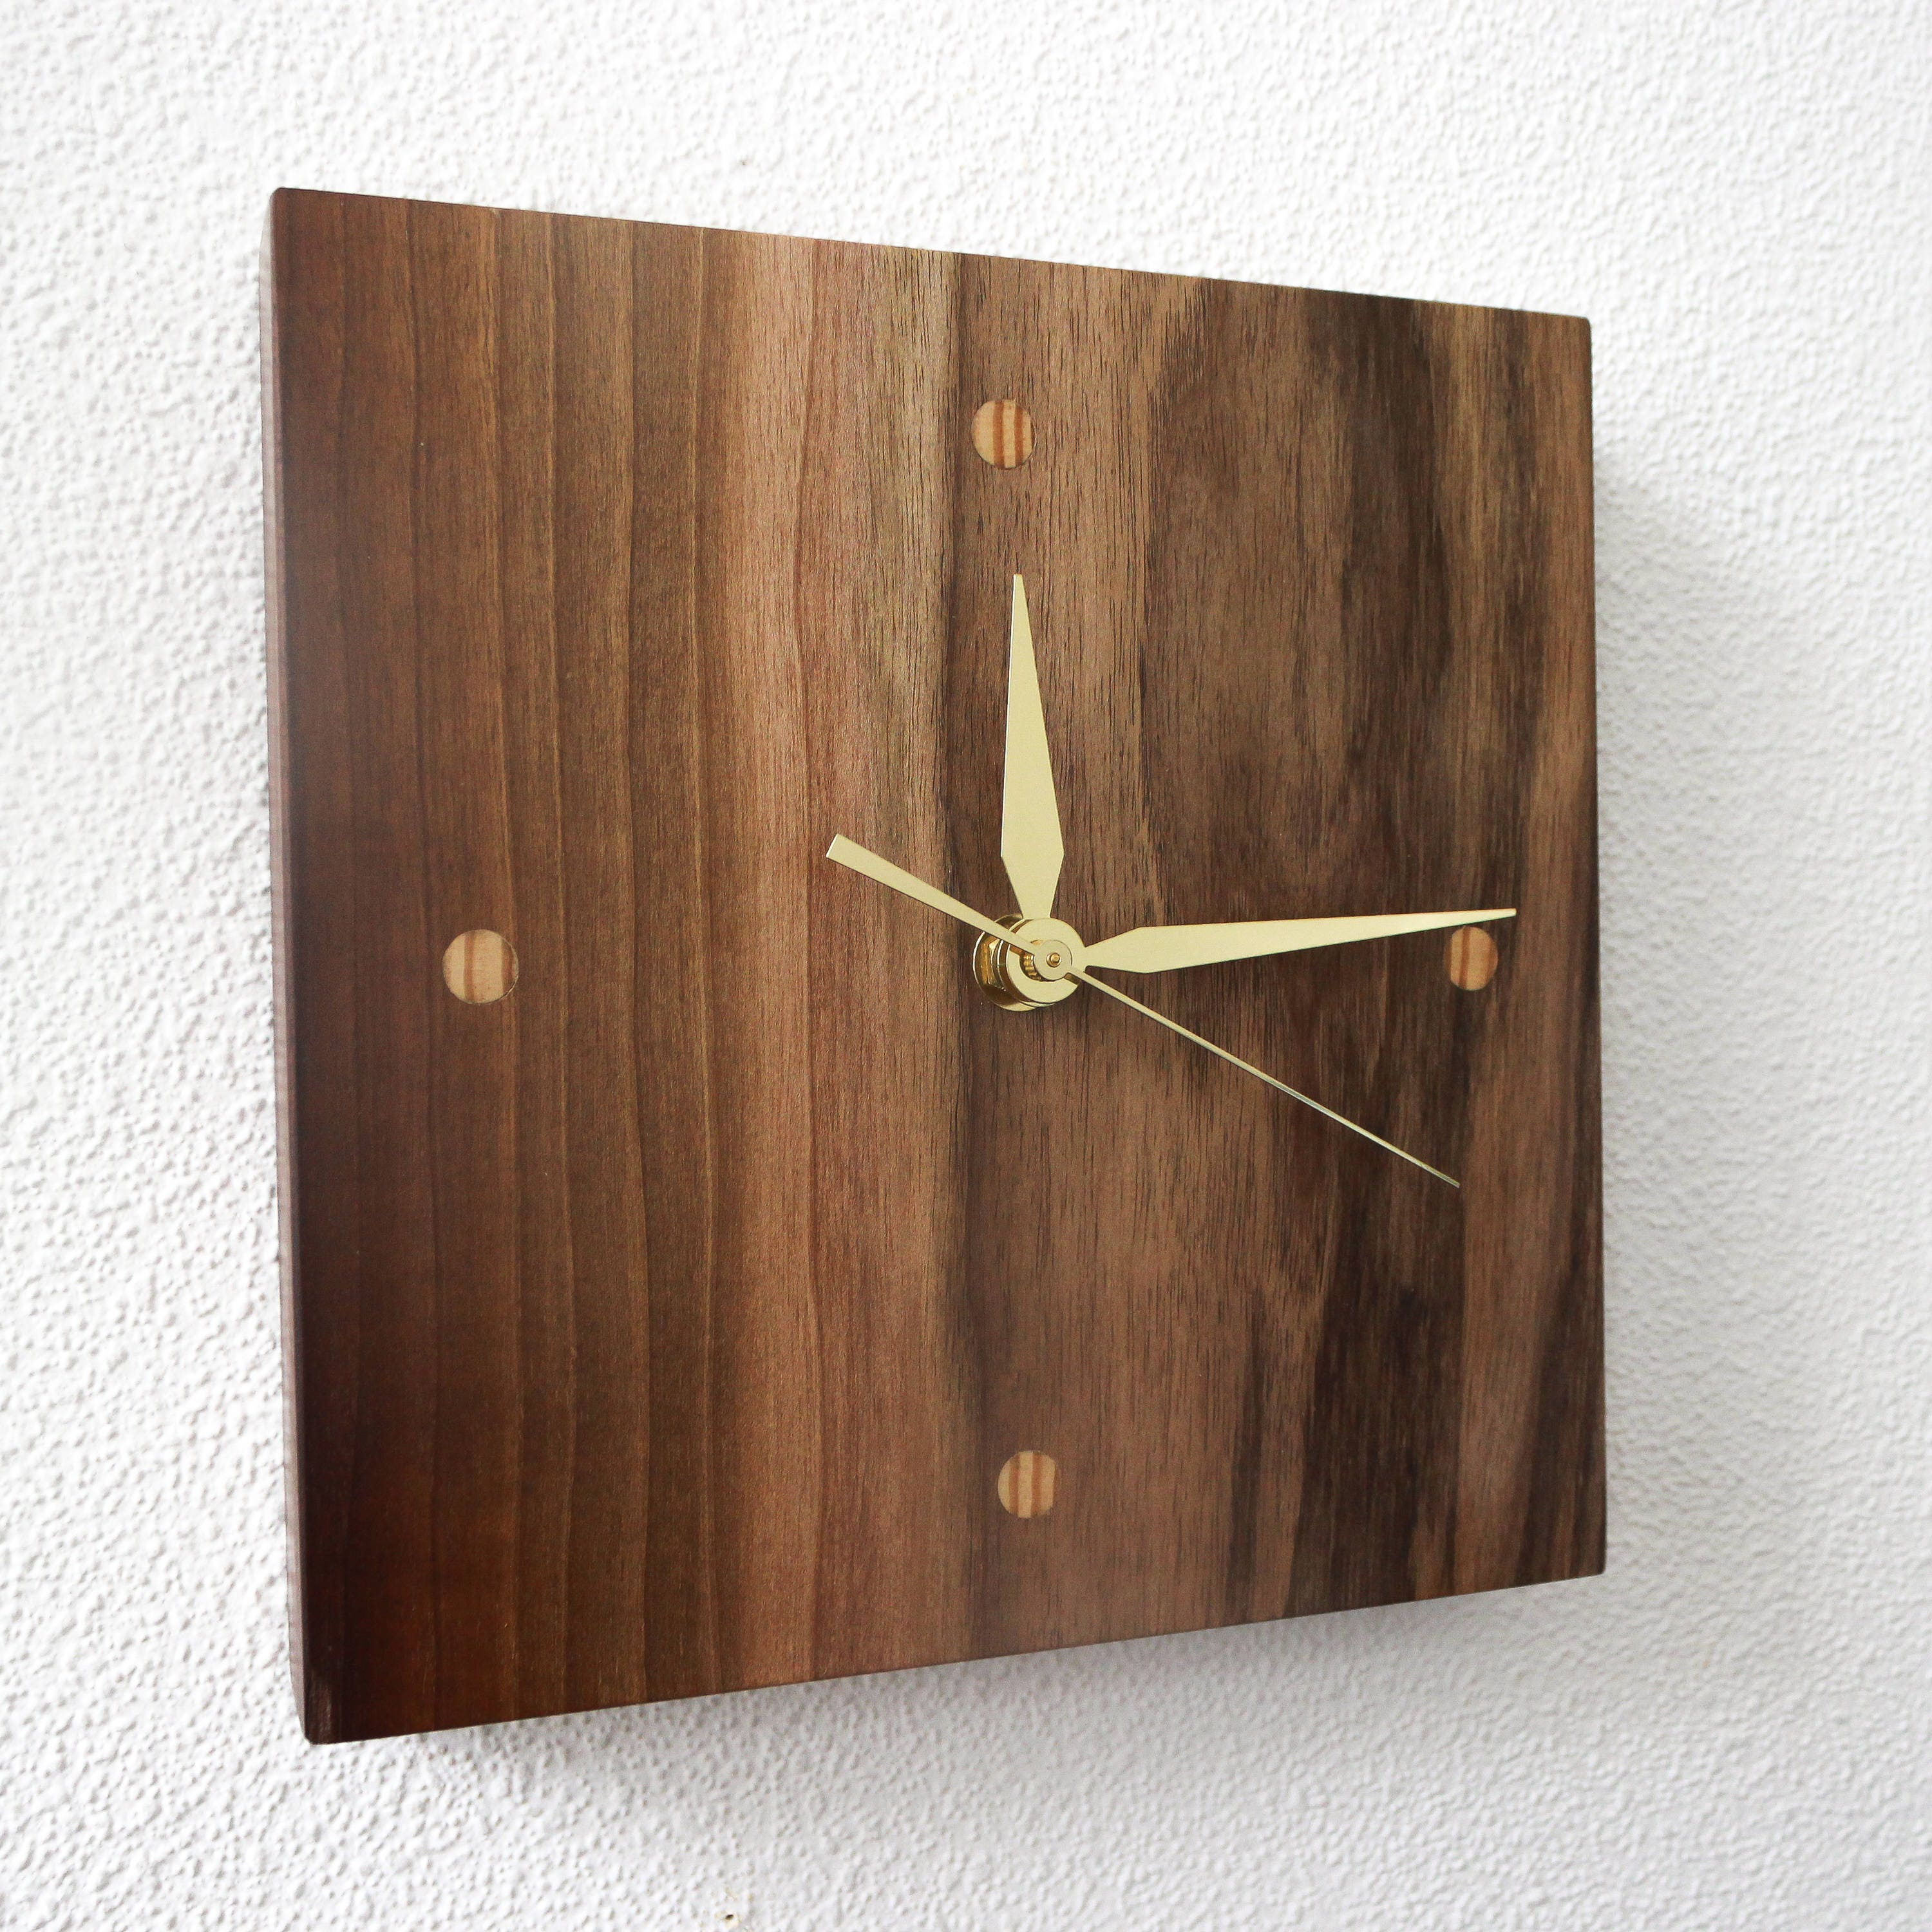 Unique wall clocks wall clock modern wood clocks small zoom amipublicfo Image collections